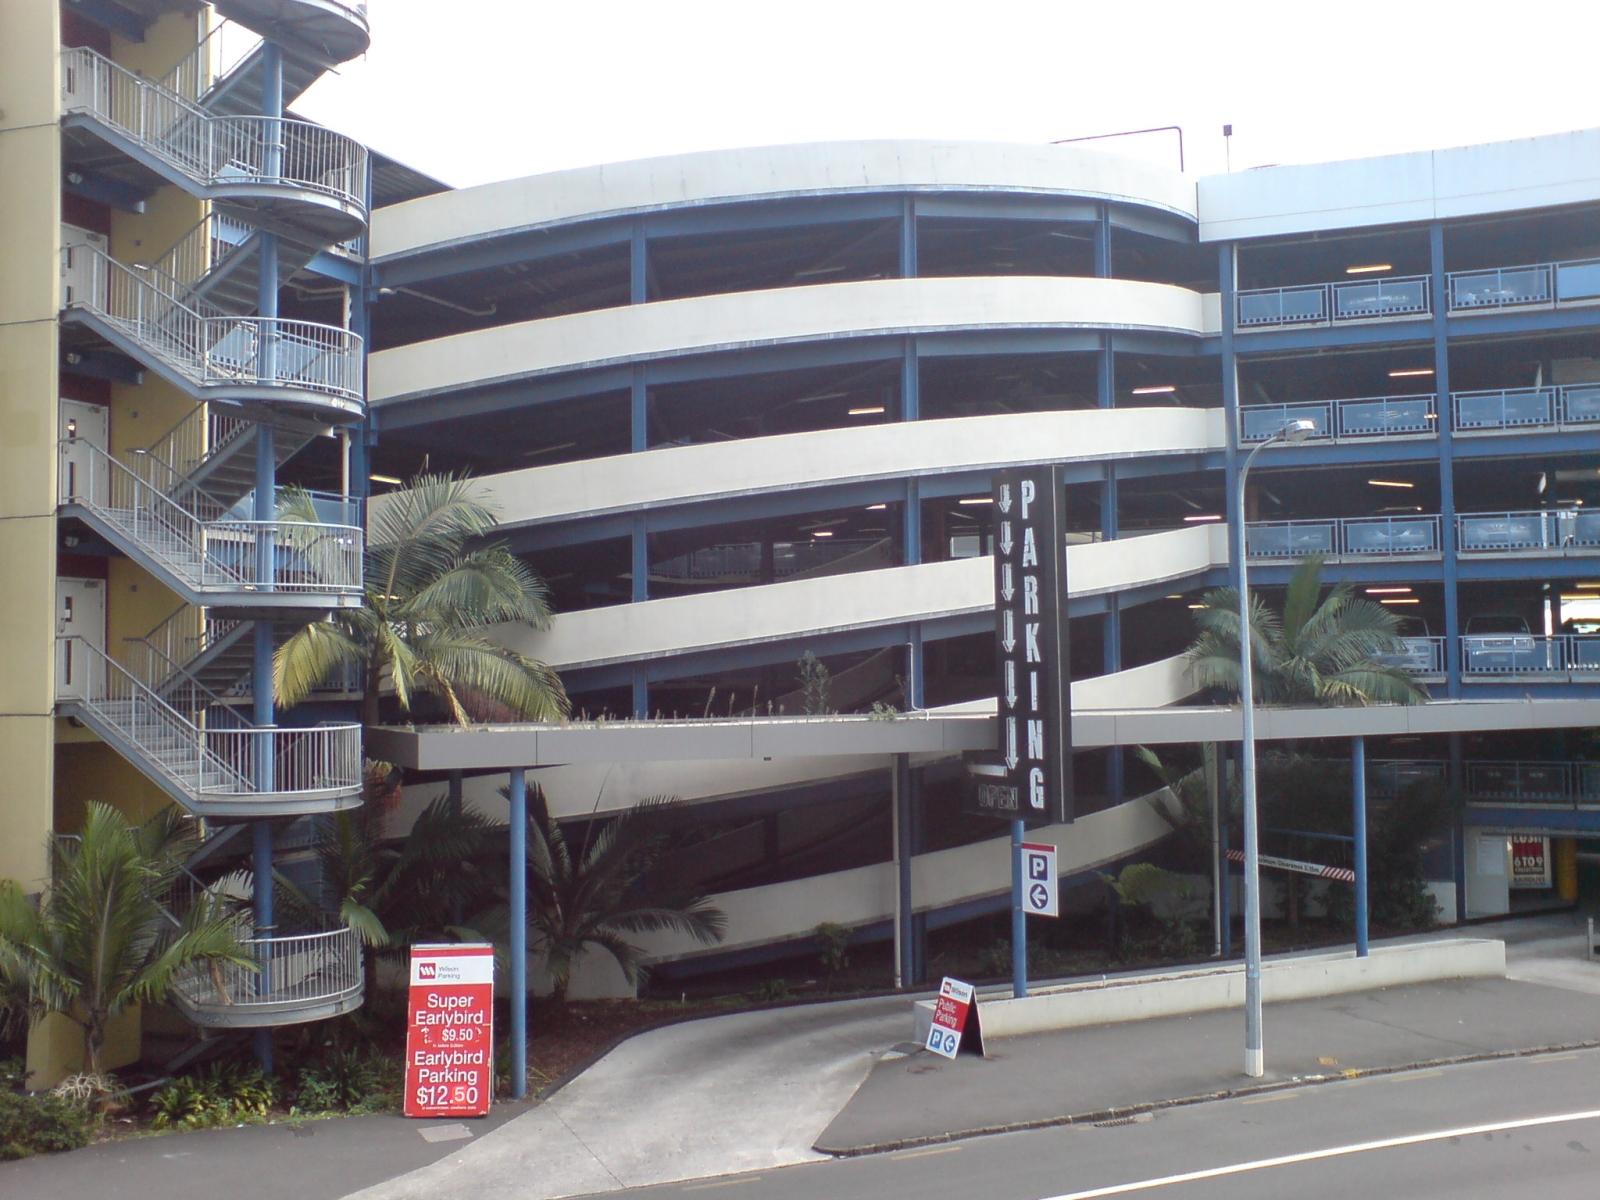 File:Car Parking Building In Auckland CBD.jpg - Wikimedia Commons